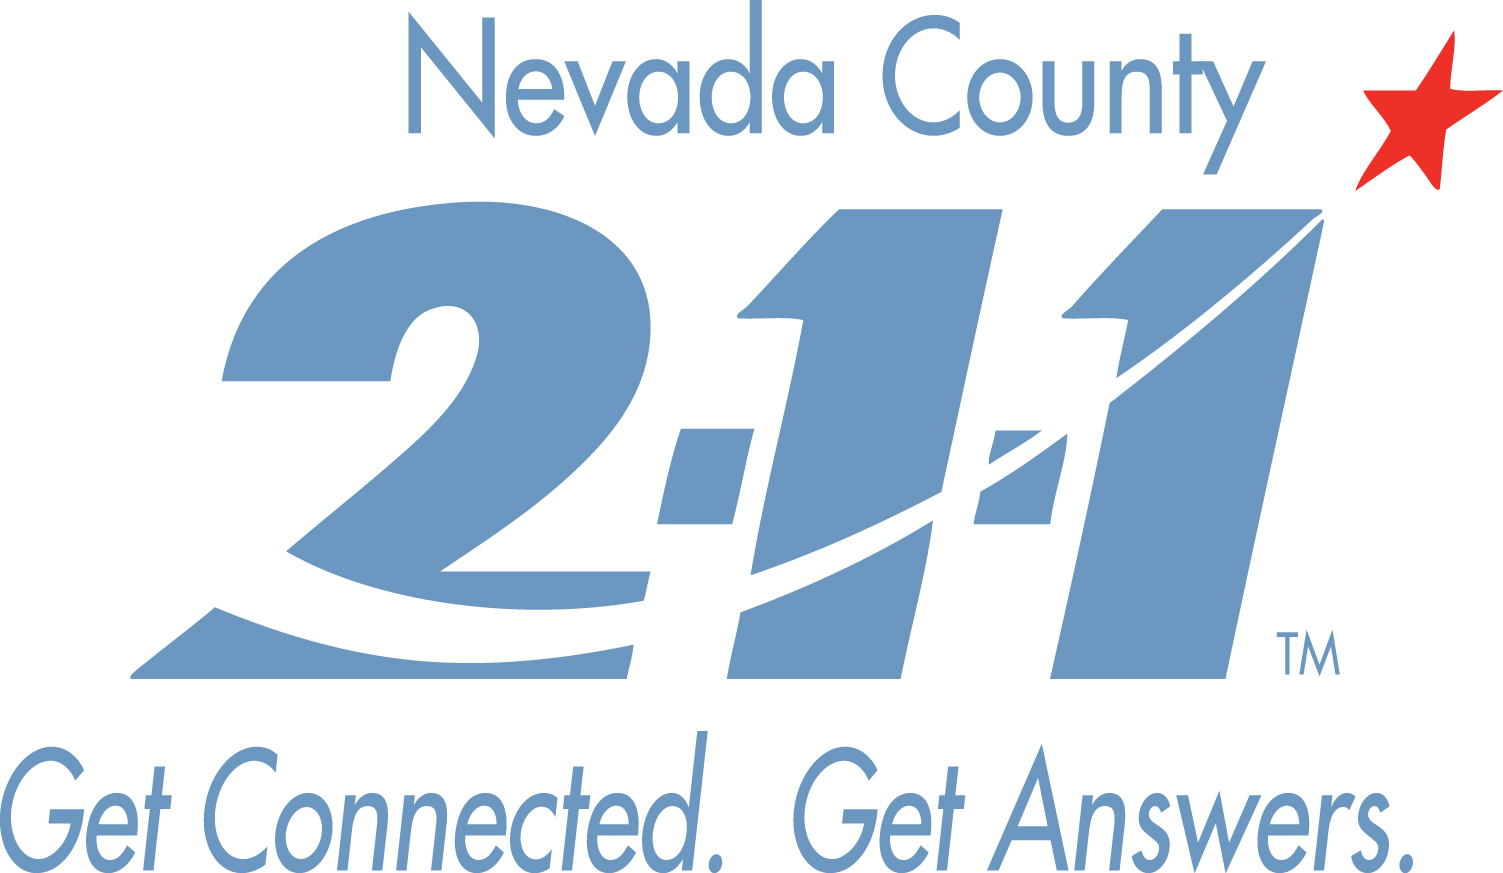 211 Nevada County is a resource and information hub that connects people with community programs and services through a free, 24/7 confidential phone service and online database. 211 serves the entire population of Nevada County with an easy to remember three digit number.